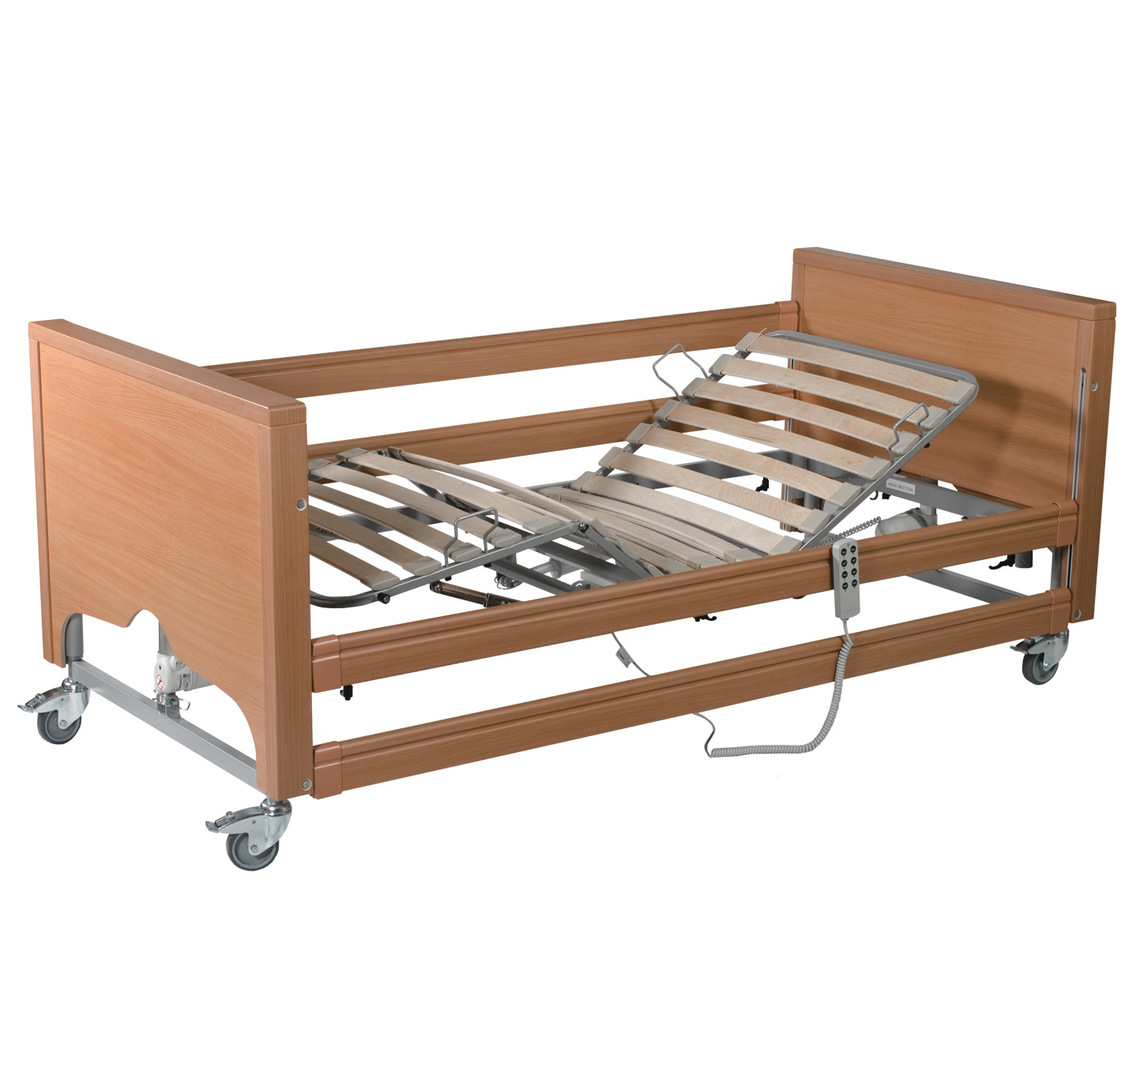 sheets sheet co bath beds bed queen sets and hizli beyond softest king rent rapidlaunch fitted for luxury hospital